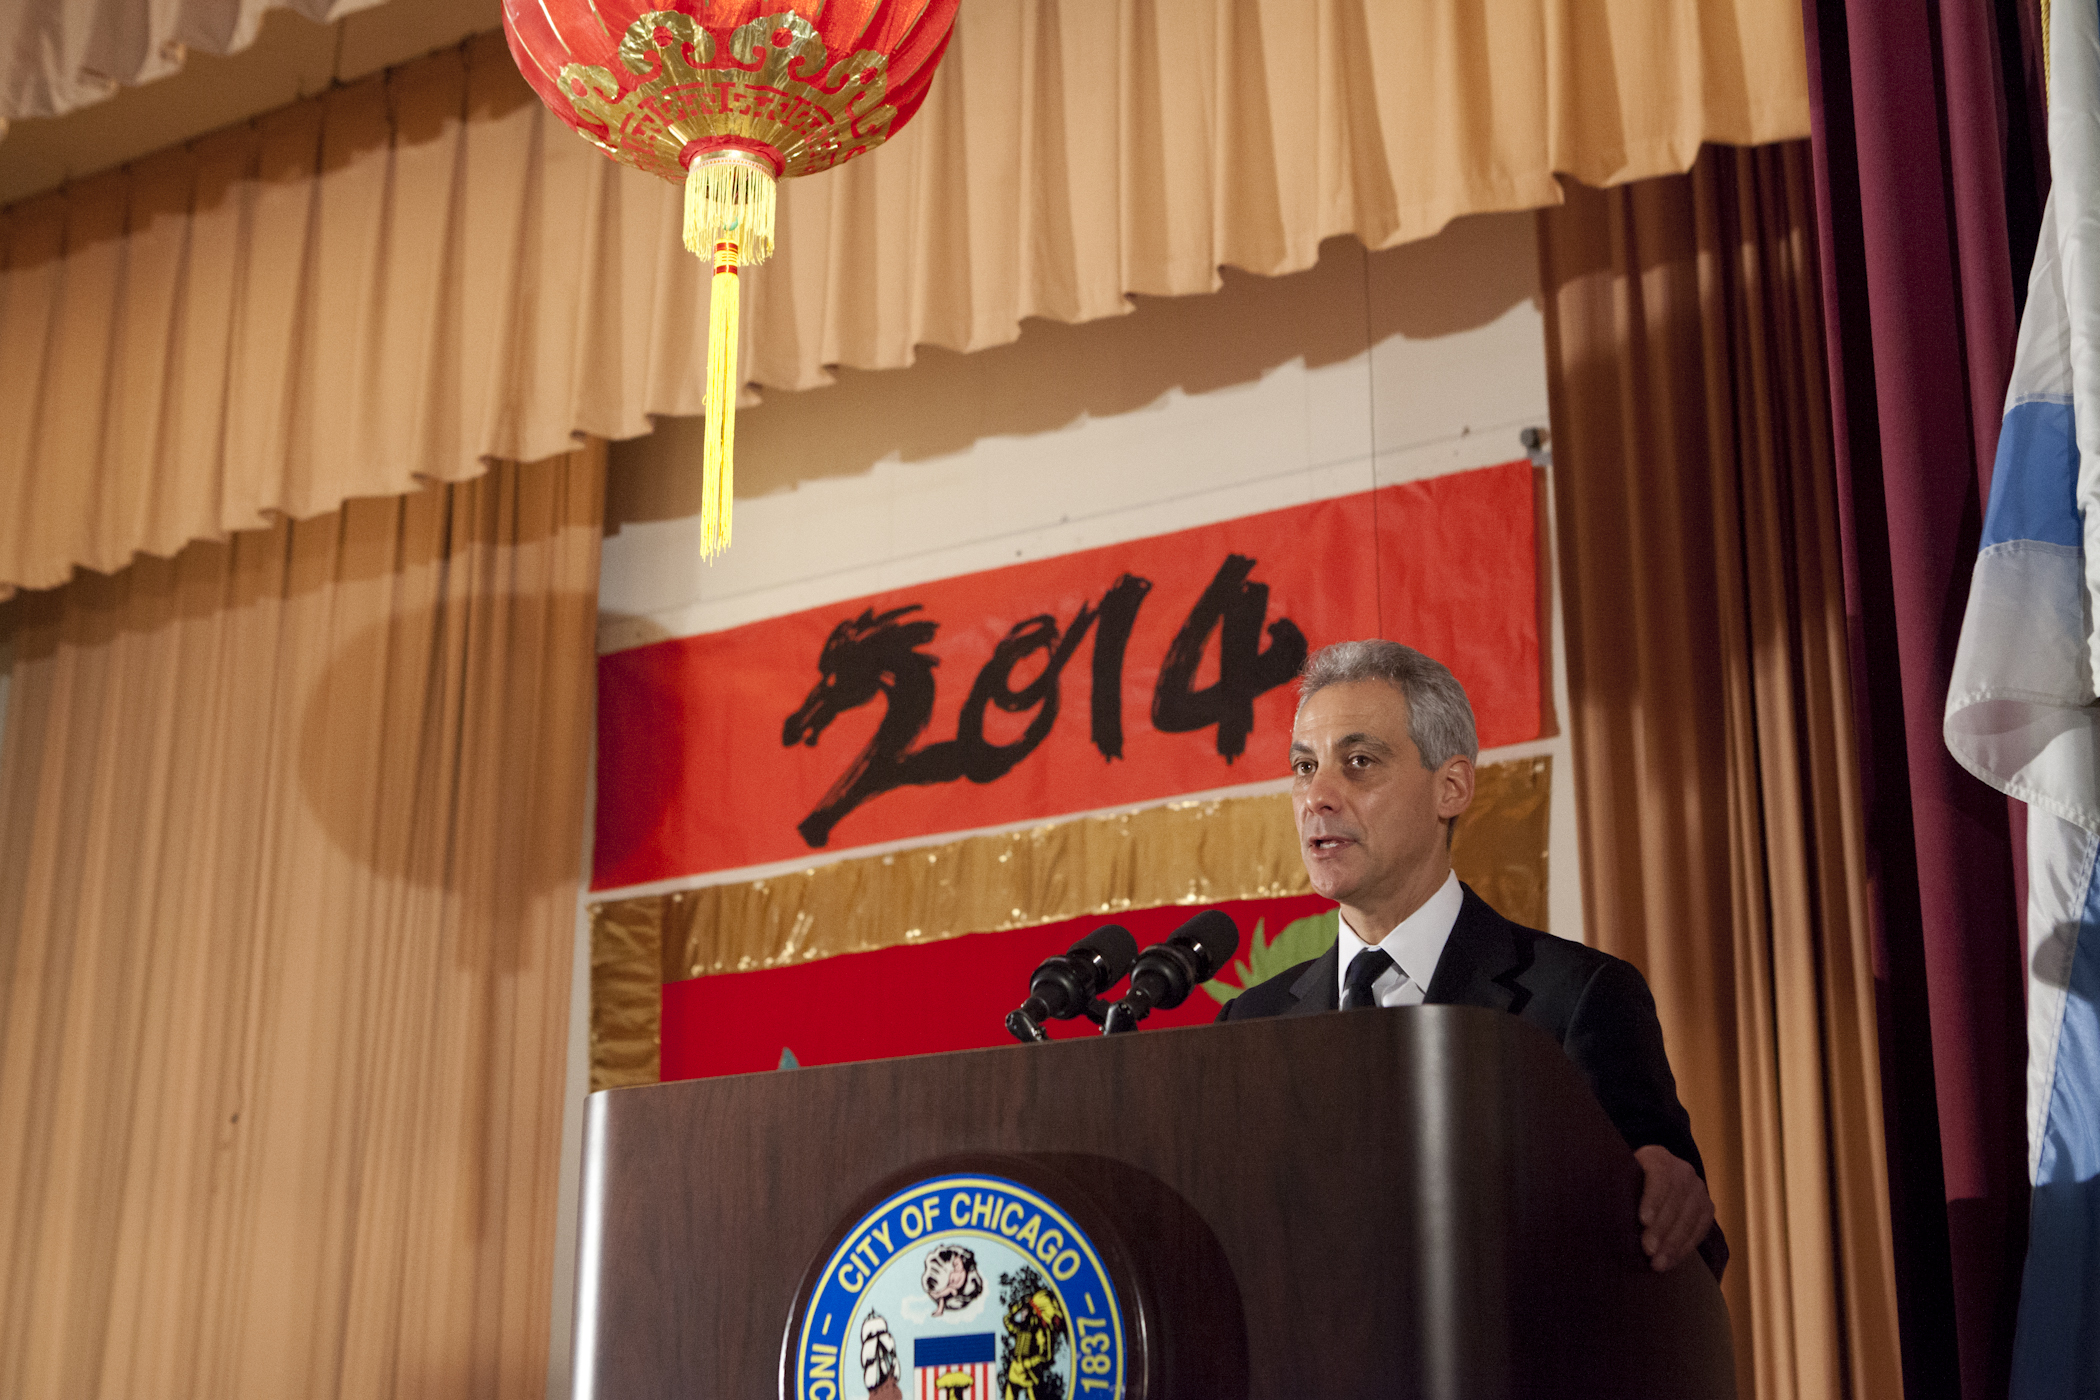 Mayor Emanuel joins community members and students from Robert Healy Elementary School to celebrate the Chinese Lunar New Year and bring in the year of the Horse